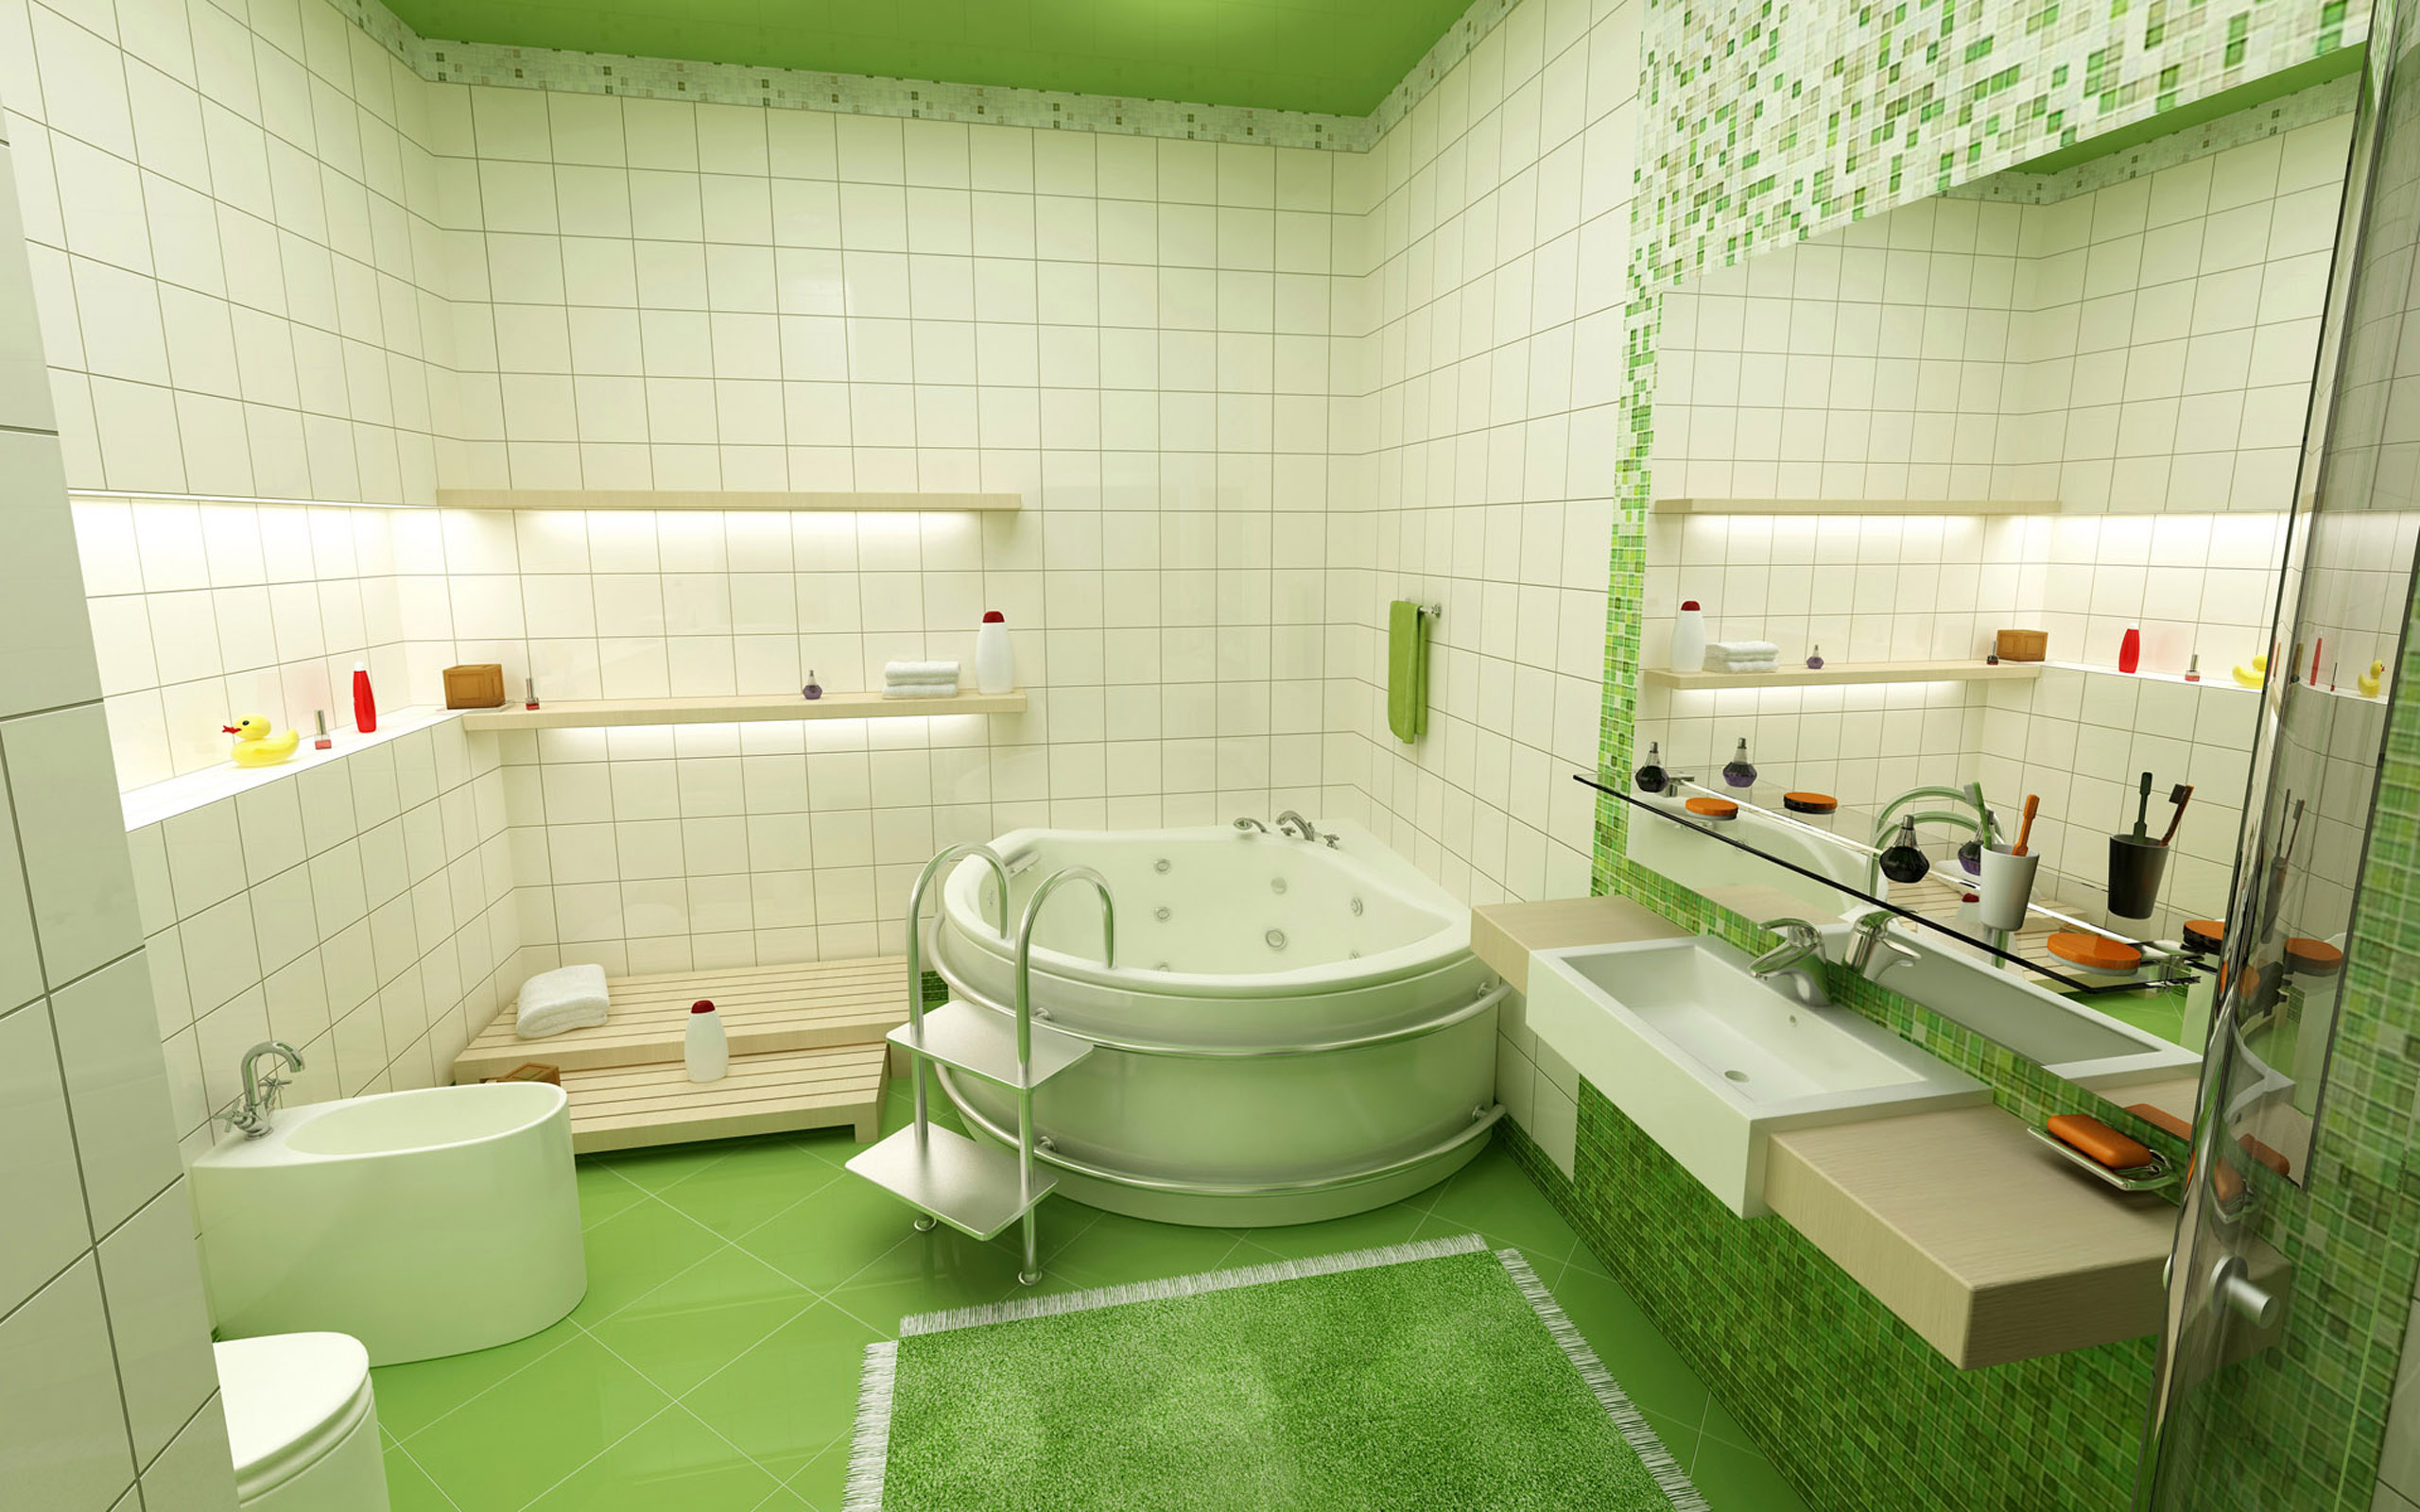 carpet-in-the-bathroom-world-trend-house-design-ideas-wall-to-new ...